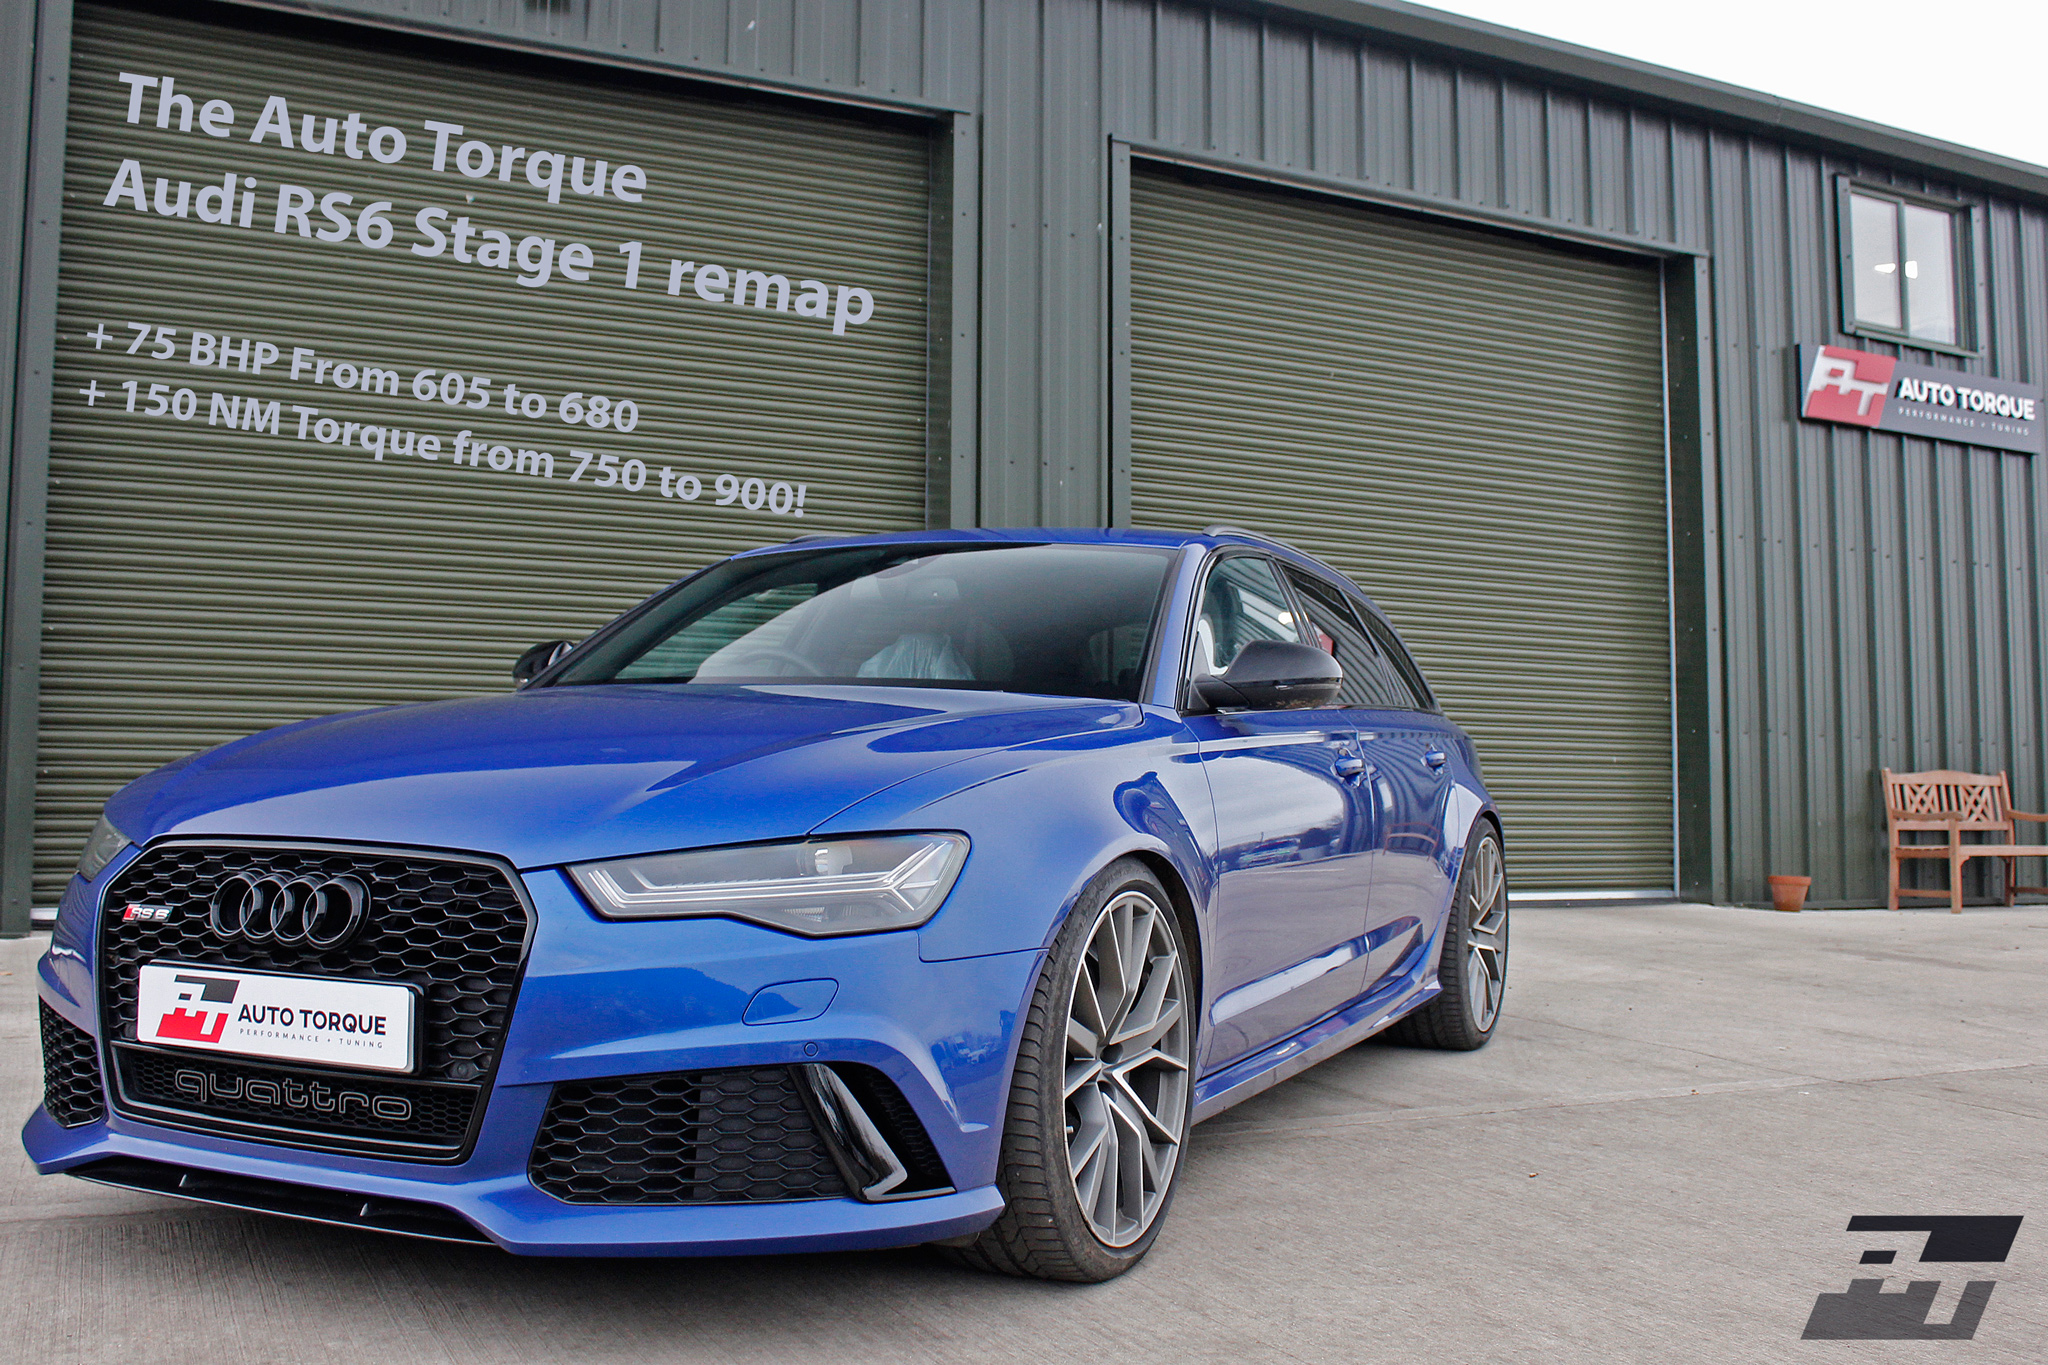 Audi RS6 Stage 1 Performance & Handling package